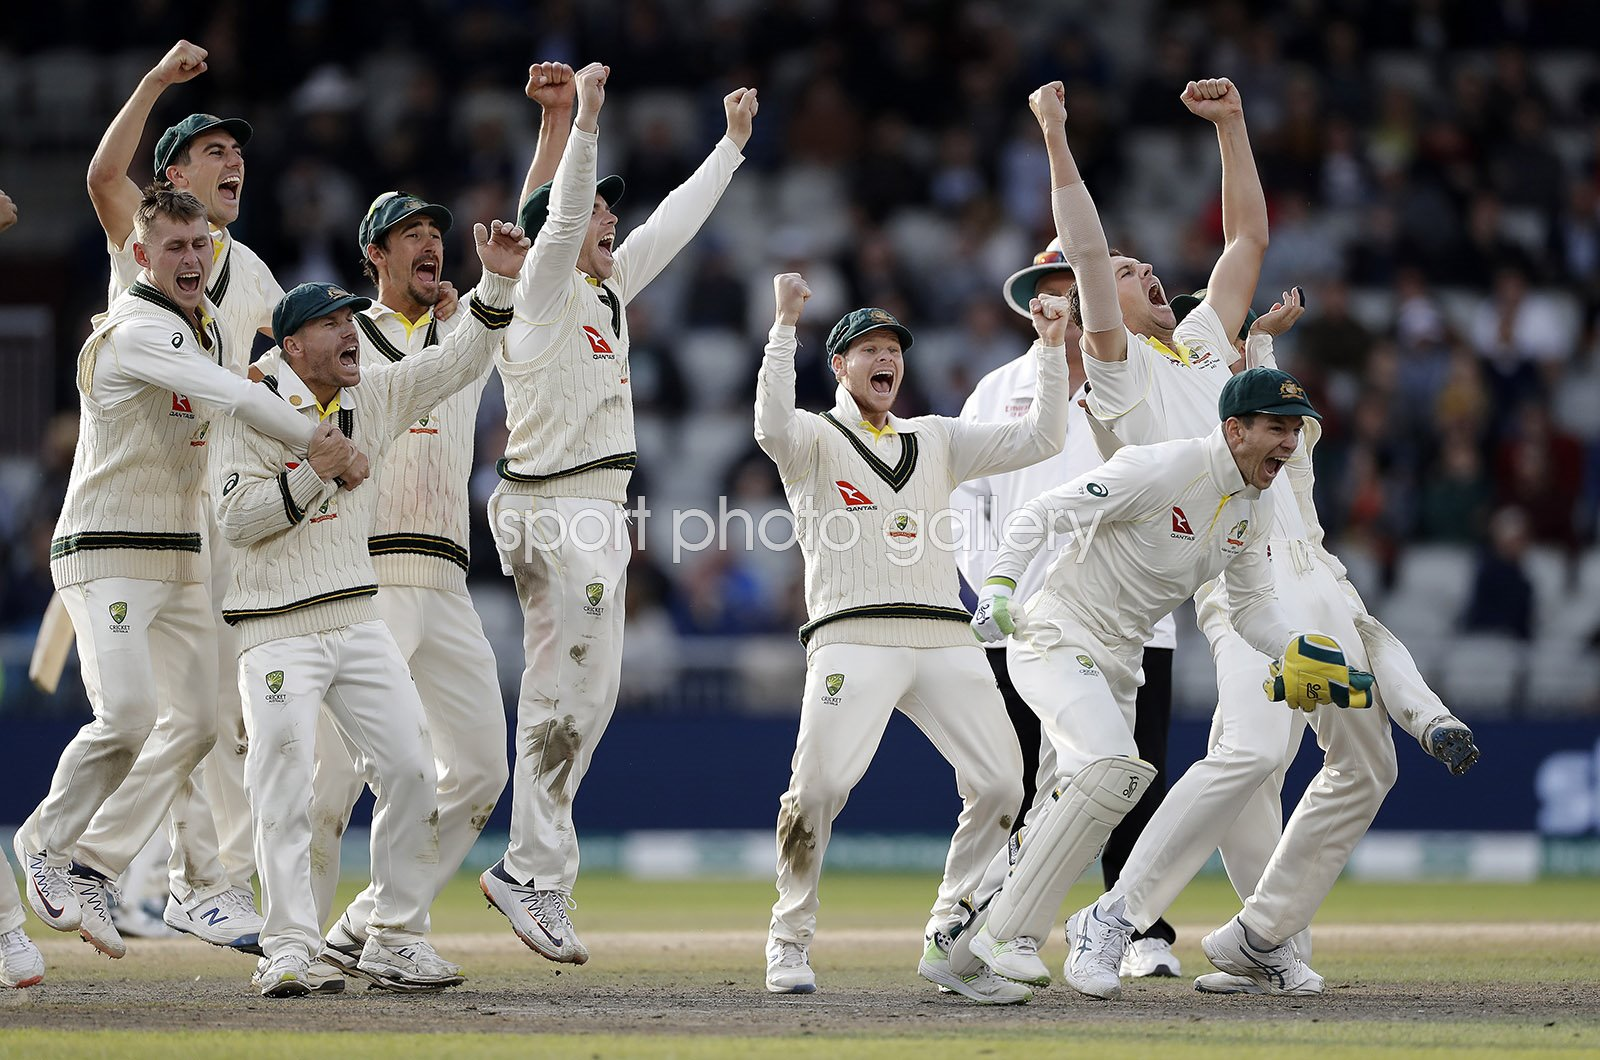 Australia retain the Ashes Old Trafford 2019